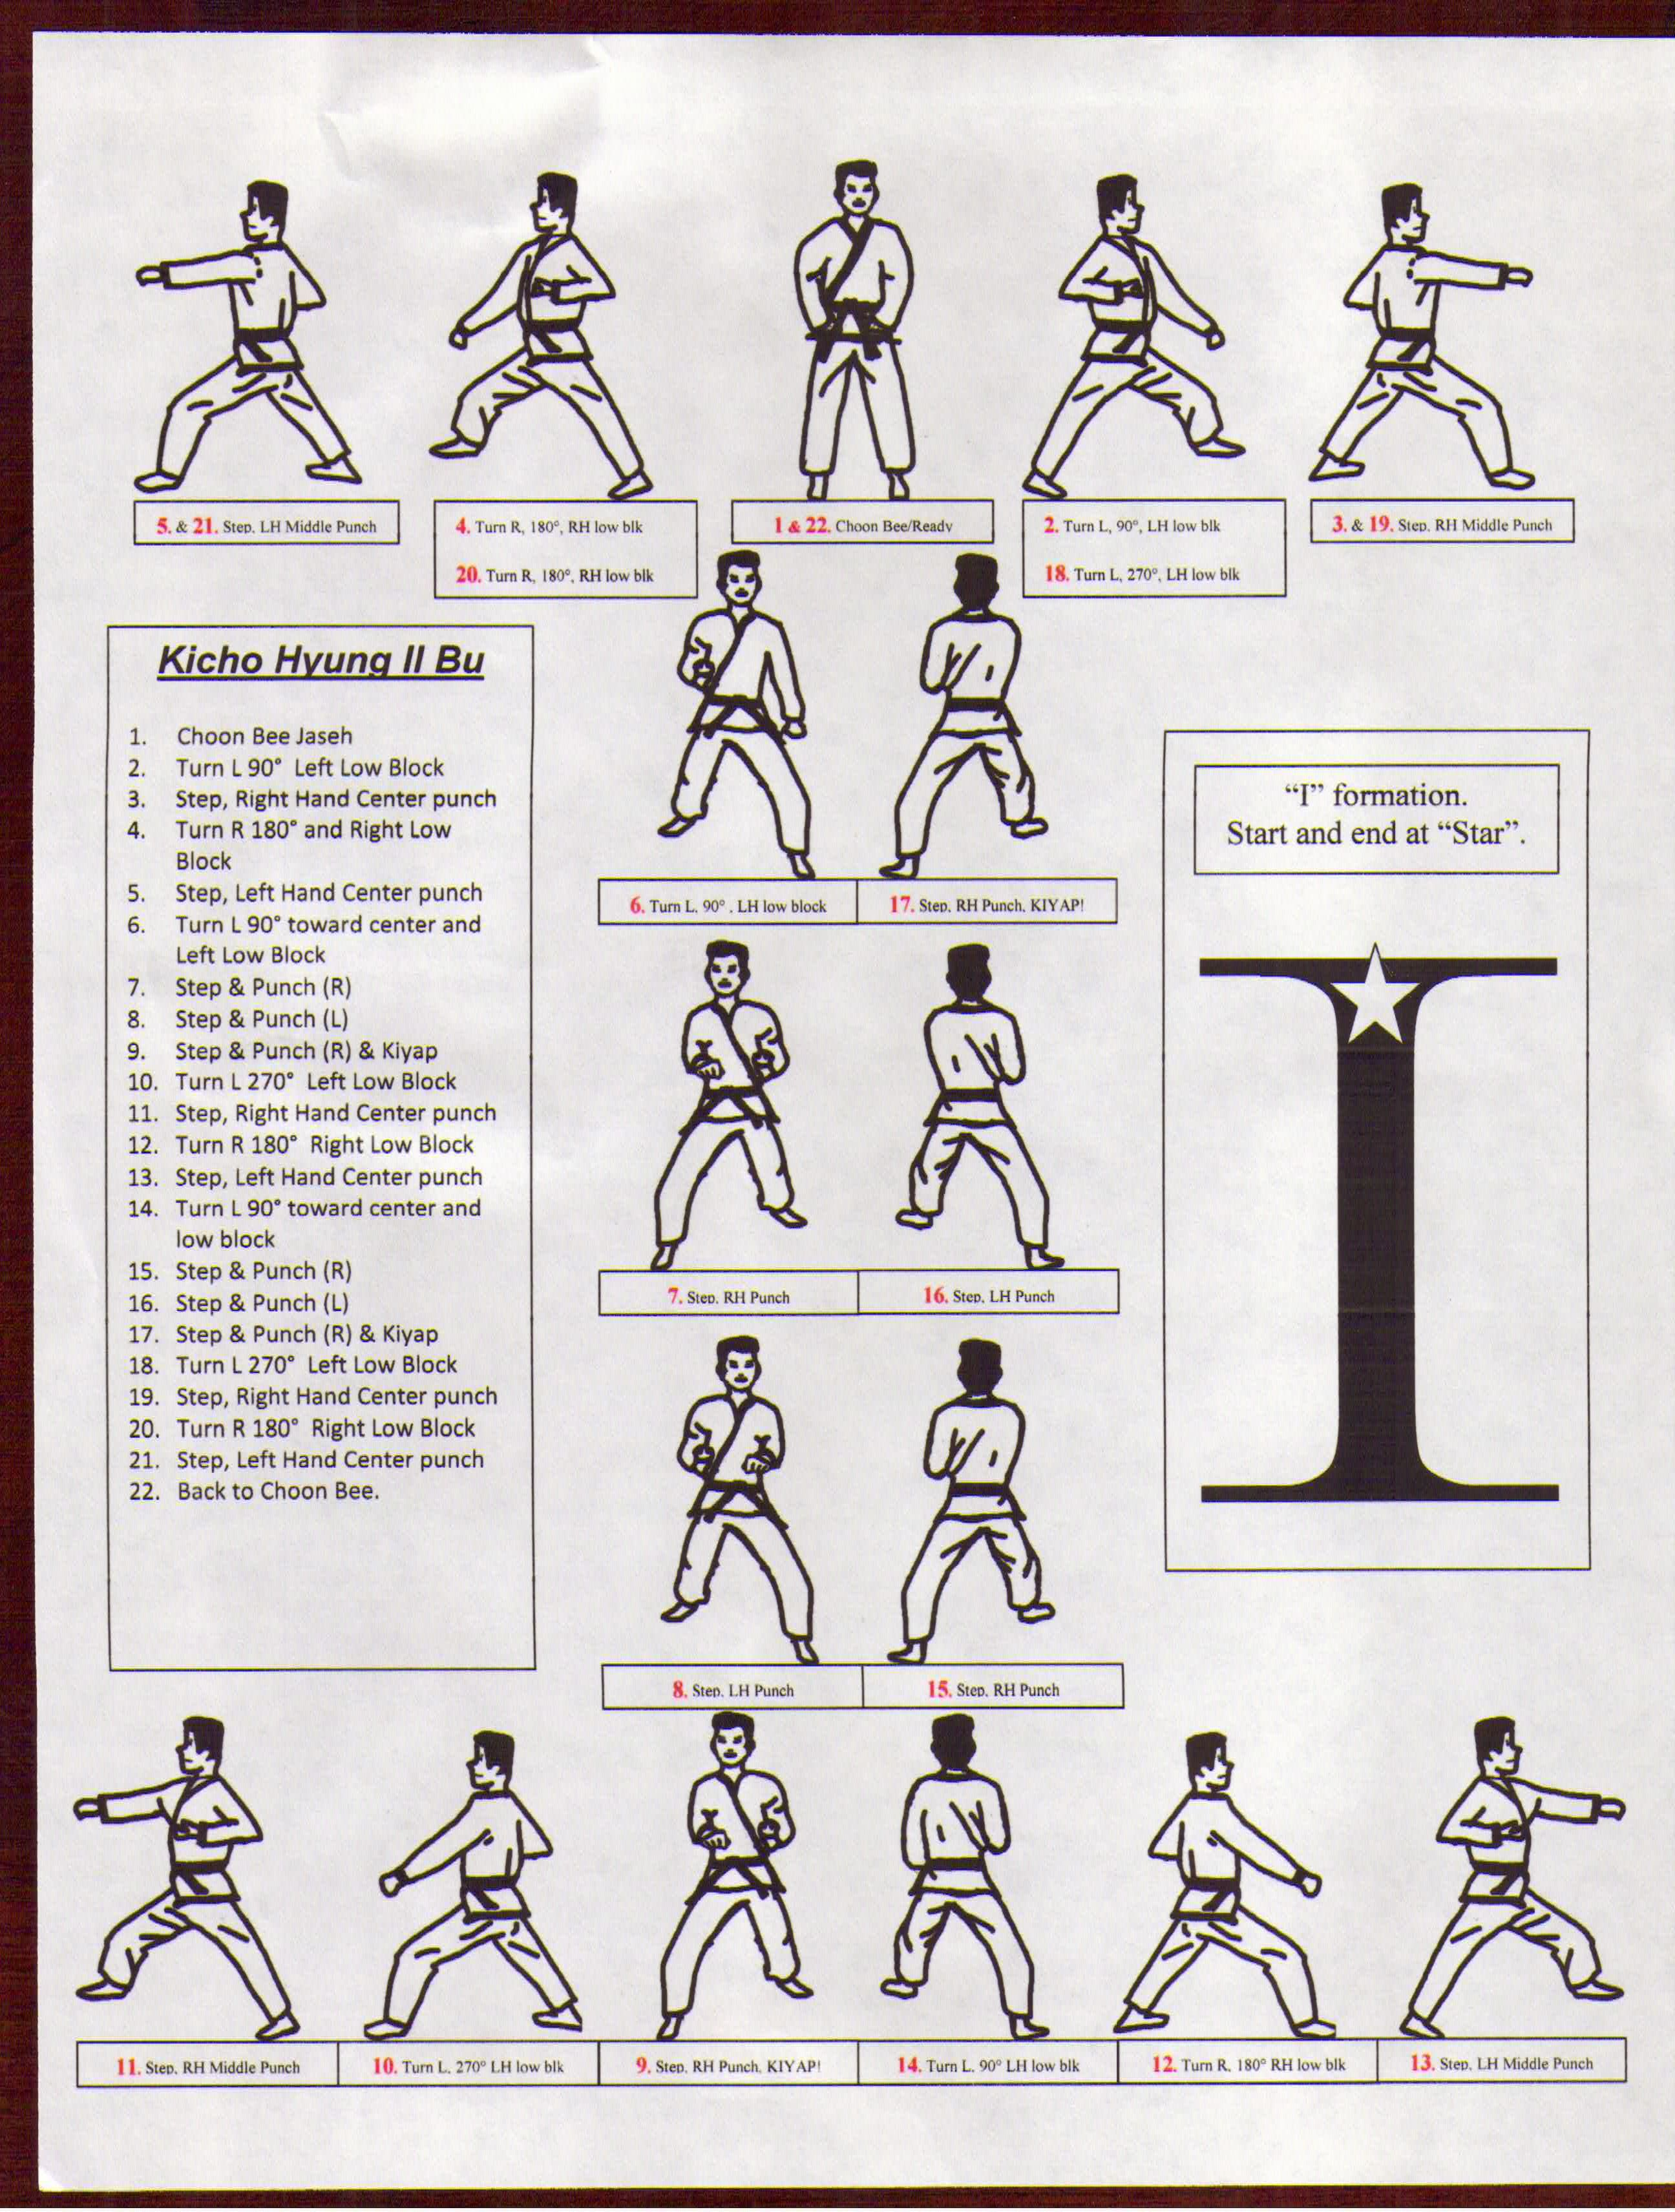 Tang Soo Do Forms Diagrams | Turn Left 90 degrees, Low Block